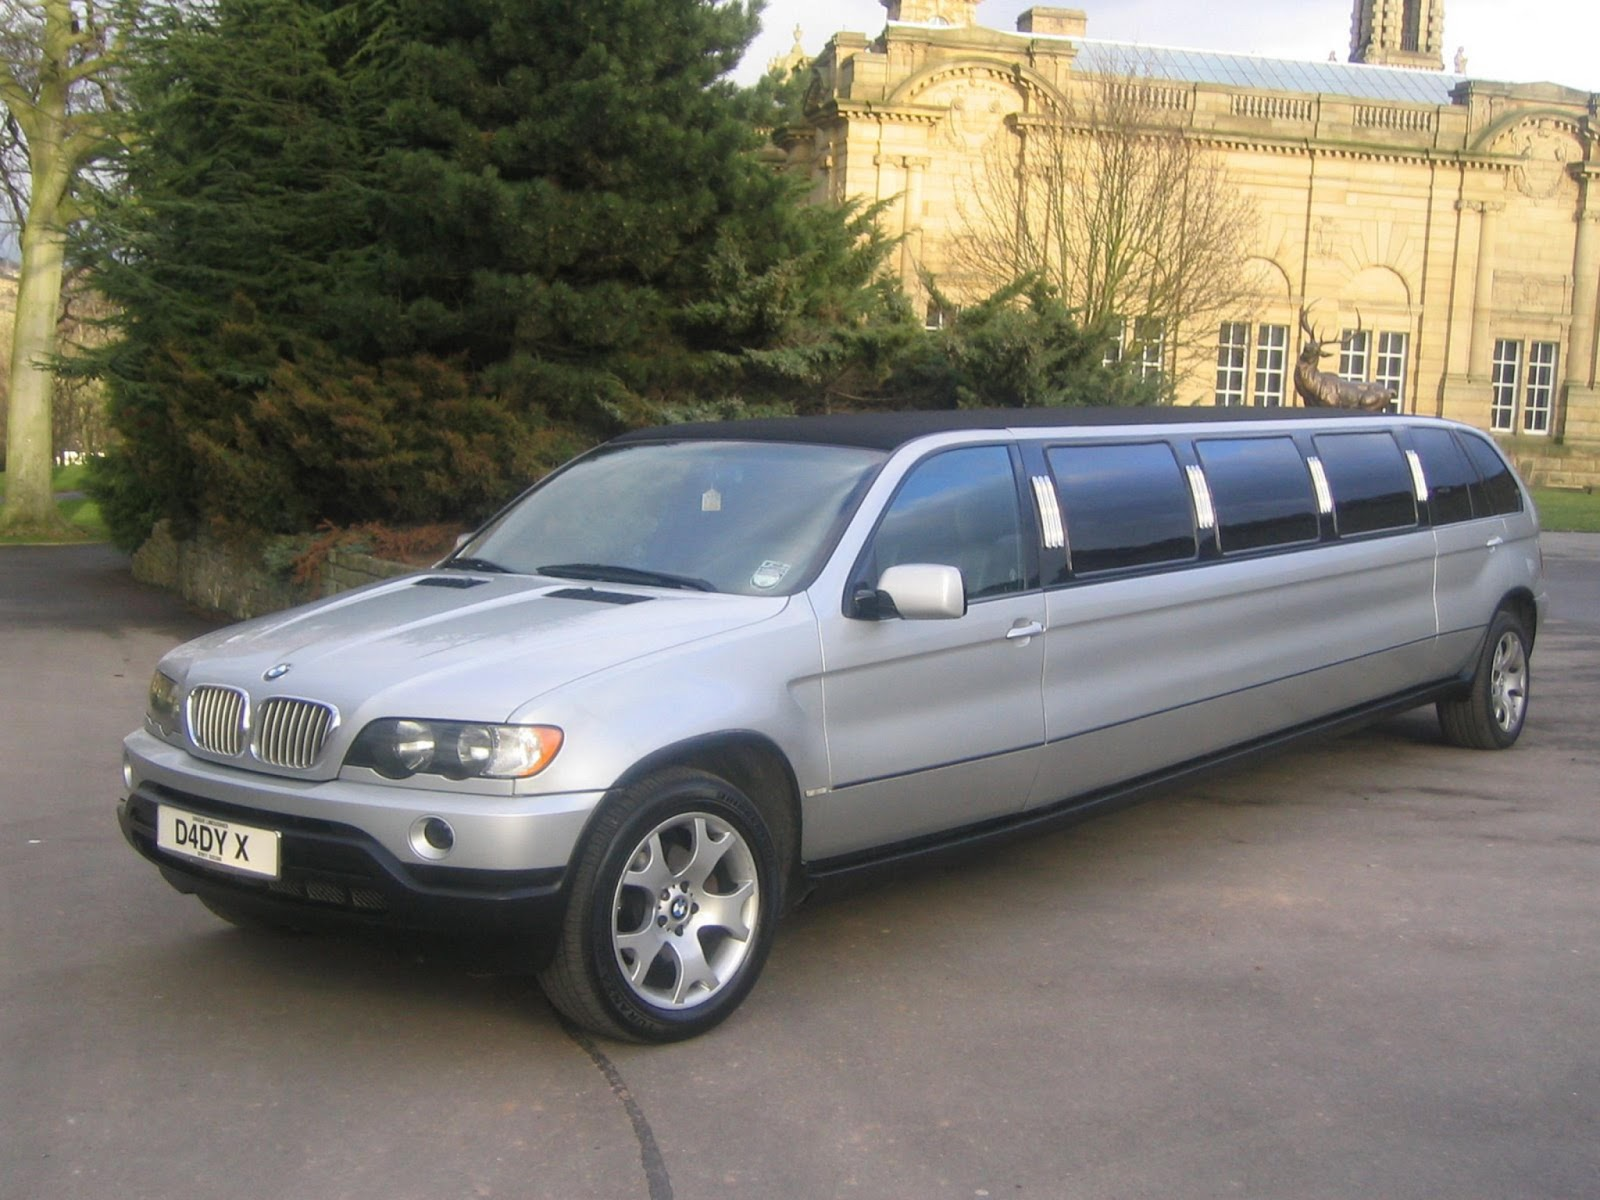 Luxury Limousine Services Limo Hire London Easiest way of Journey